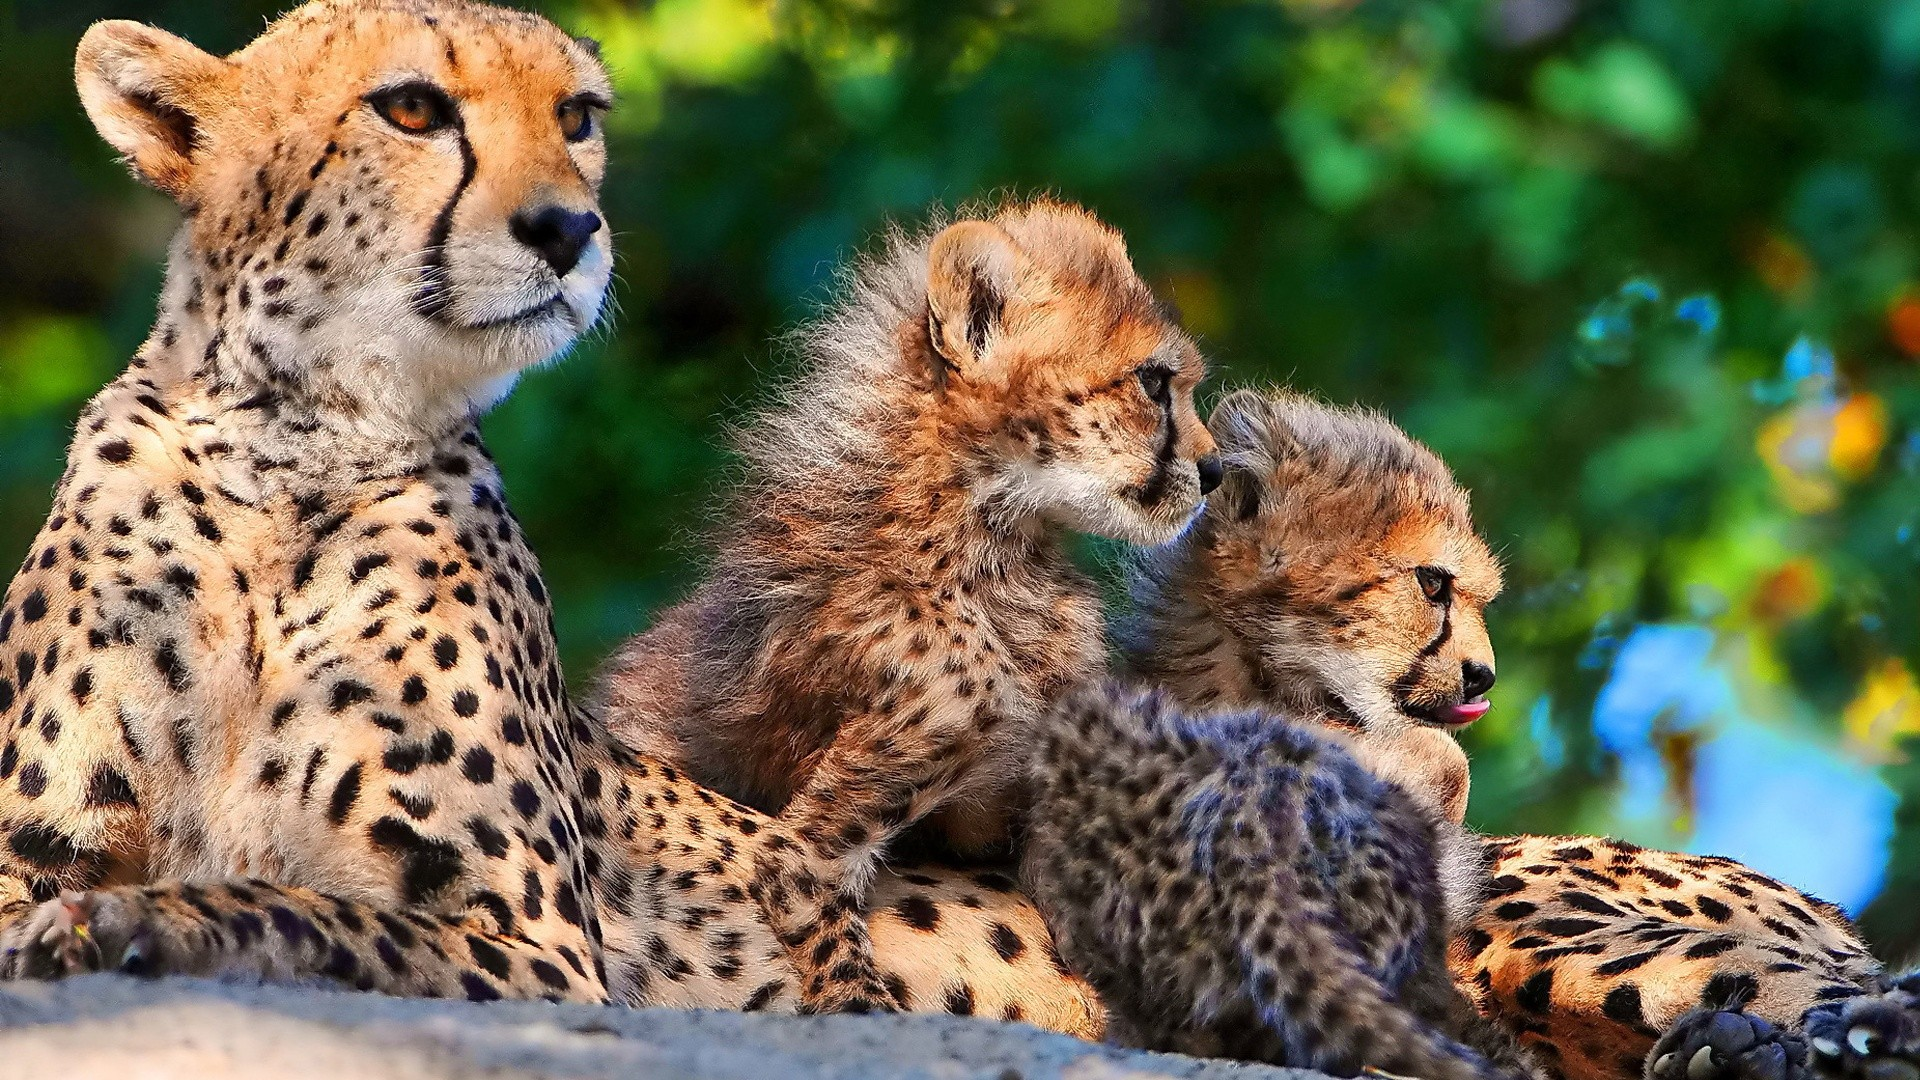 animals cheetahs wild animals big cats wallpaper | 1920x1080